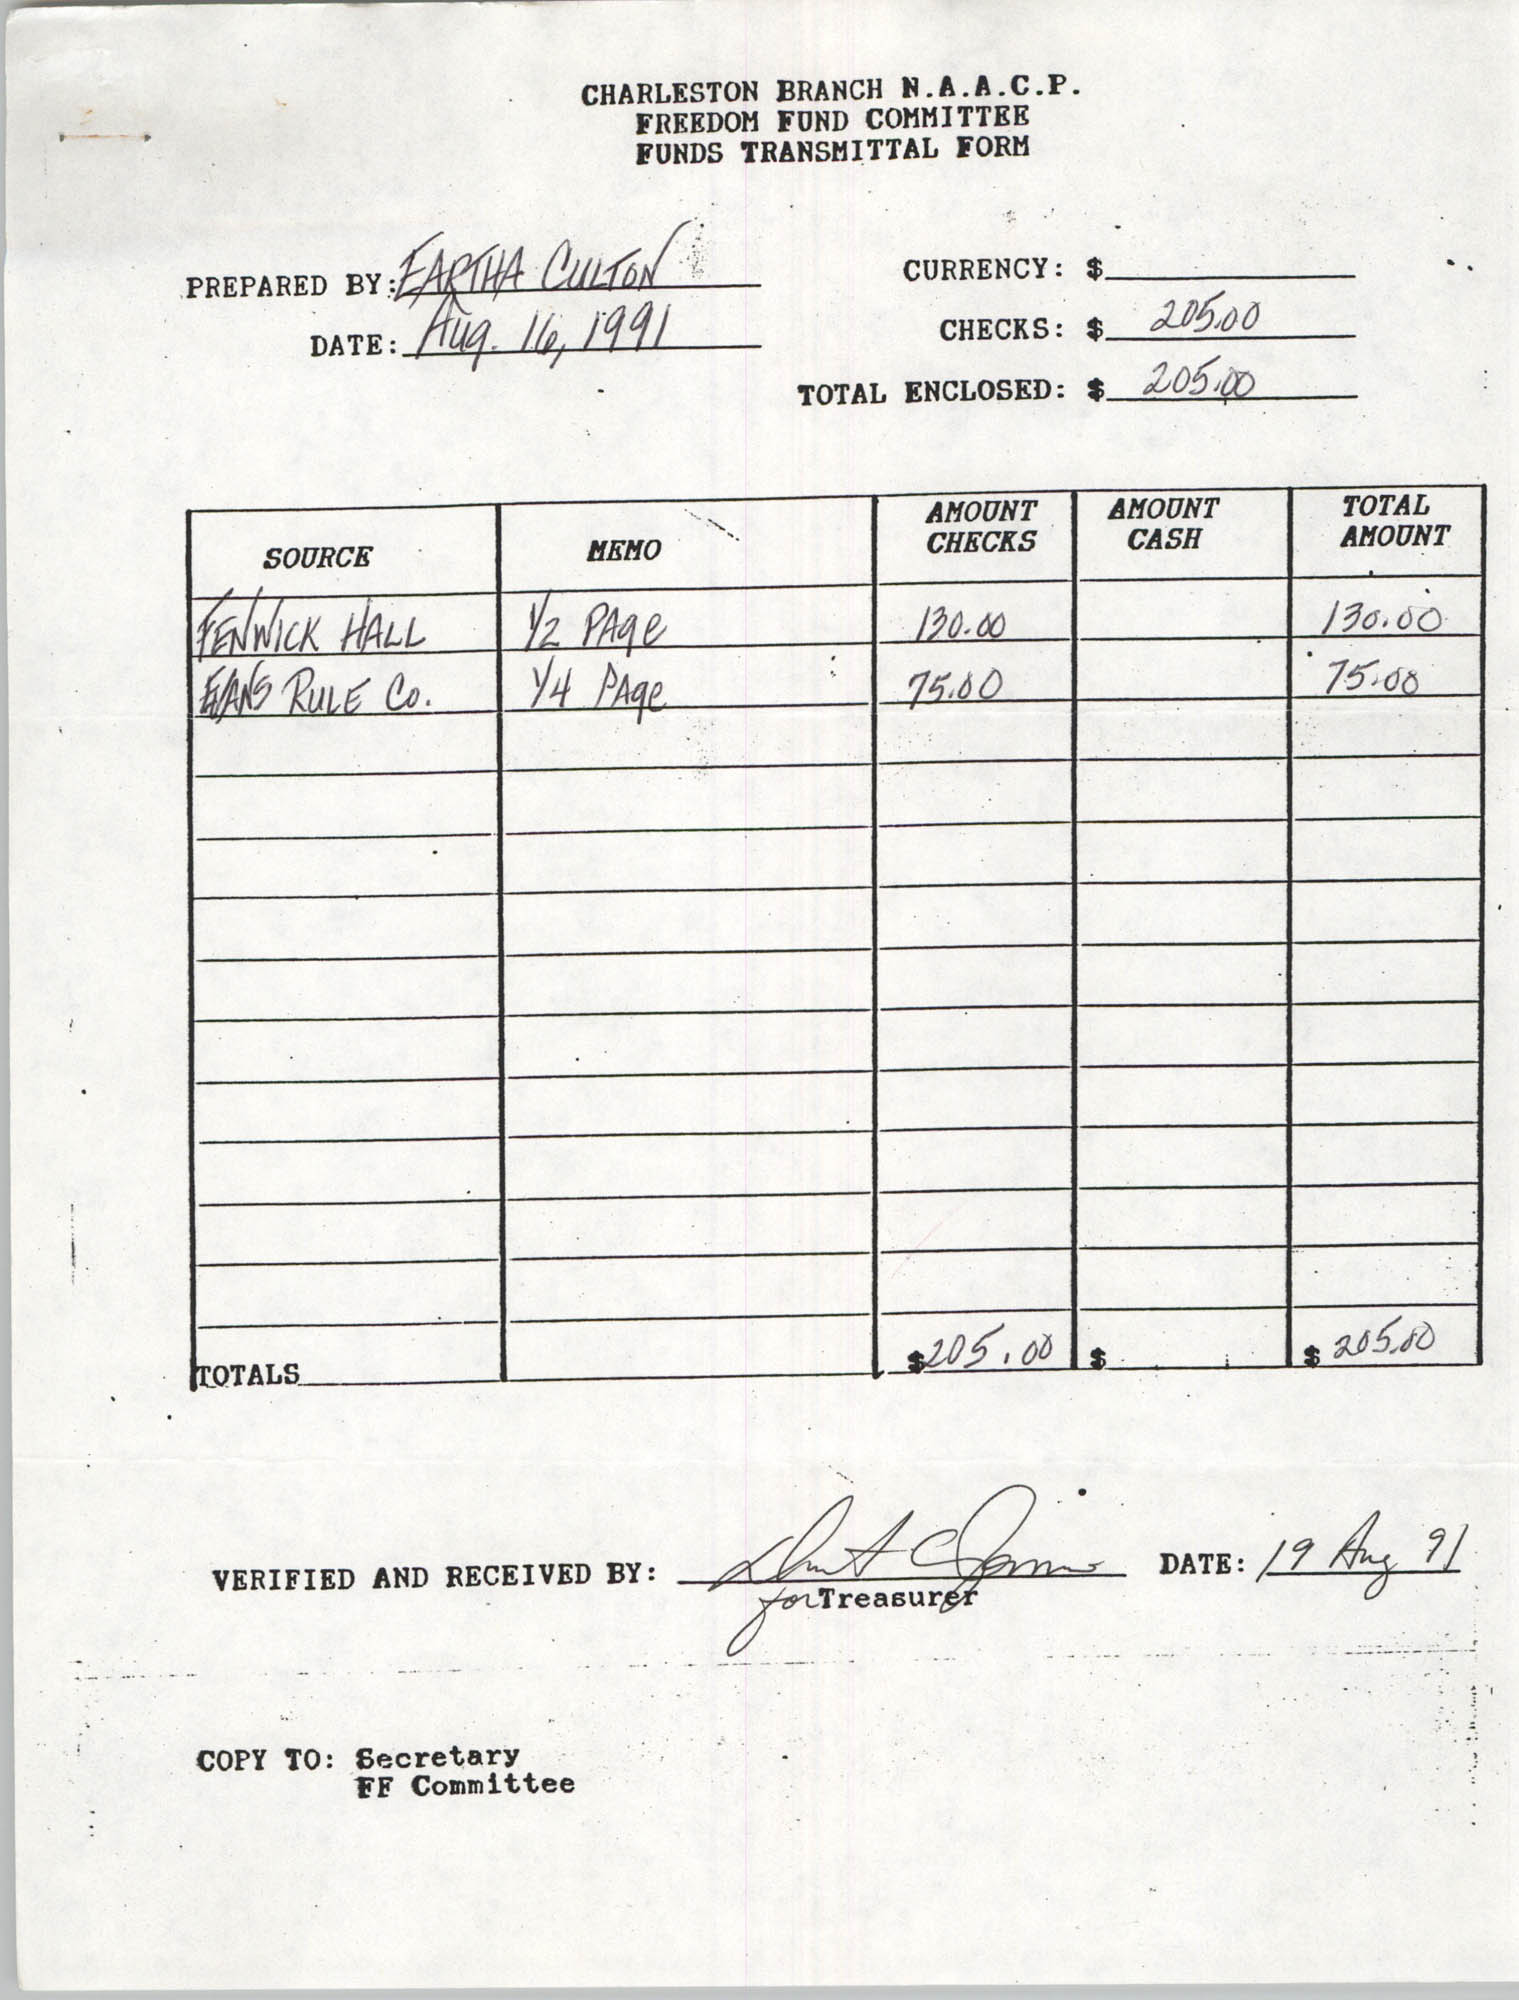 Charleston Branch of the NAACP Funds Transmittal Forms, August 1991, Page 16